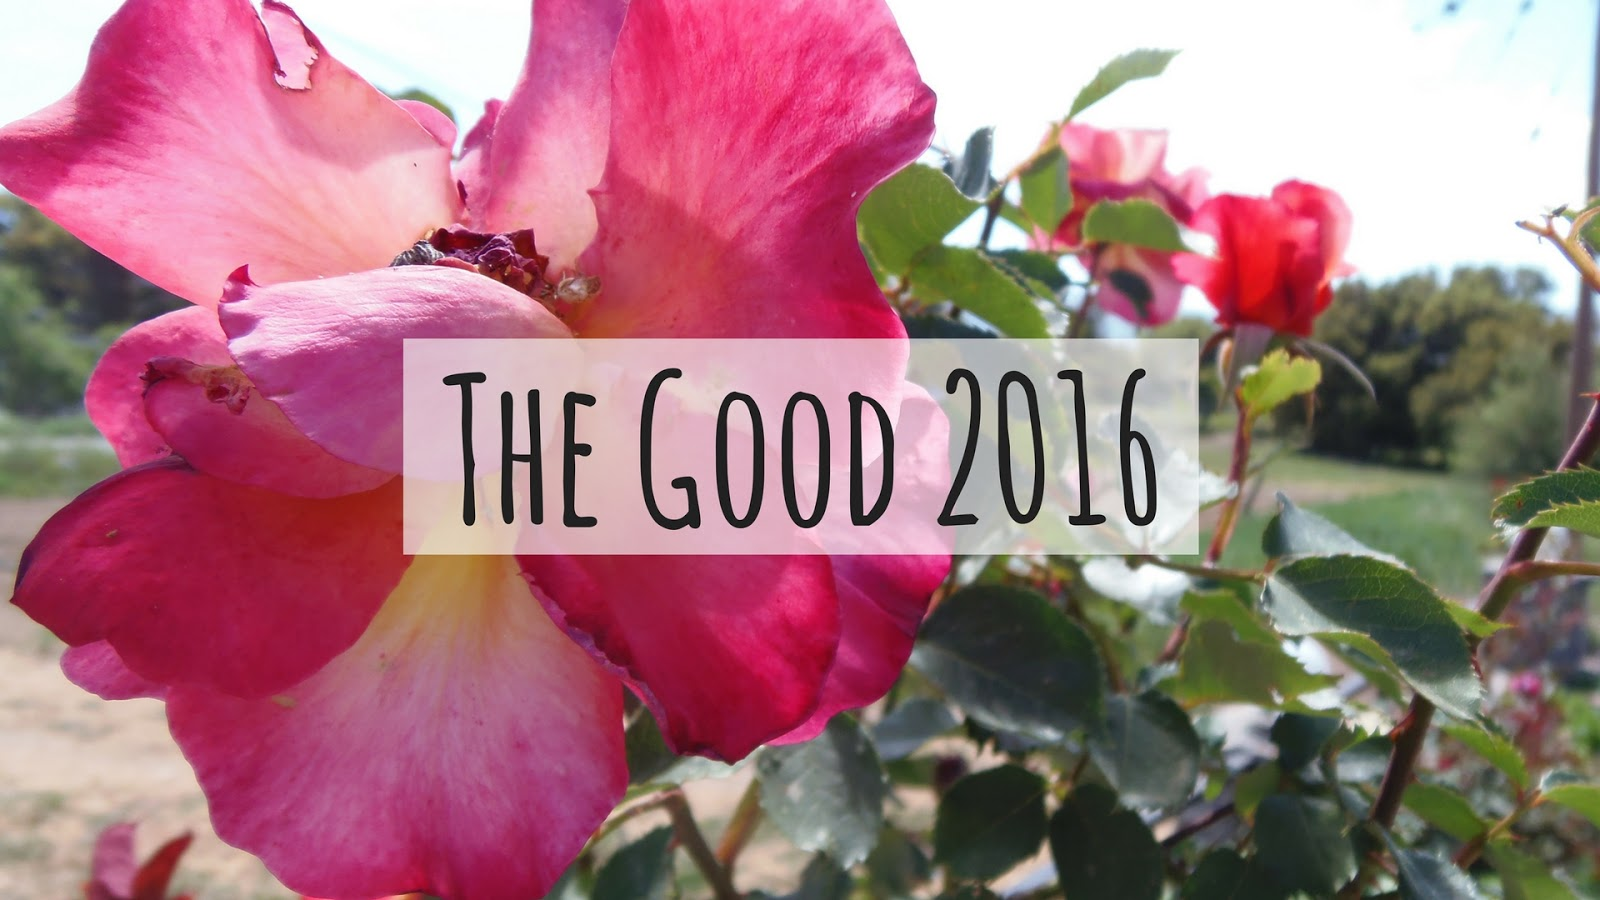 good, the bad, the ugly, depression, travel, lifestyle, holidays, 2016, 2017, new year